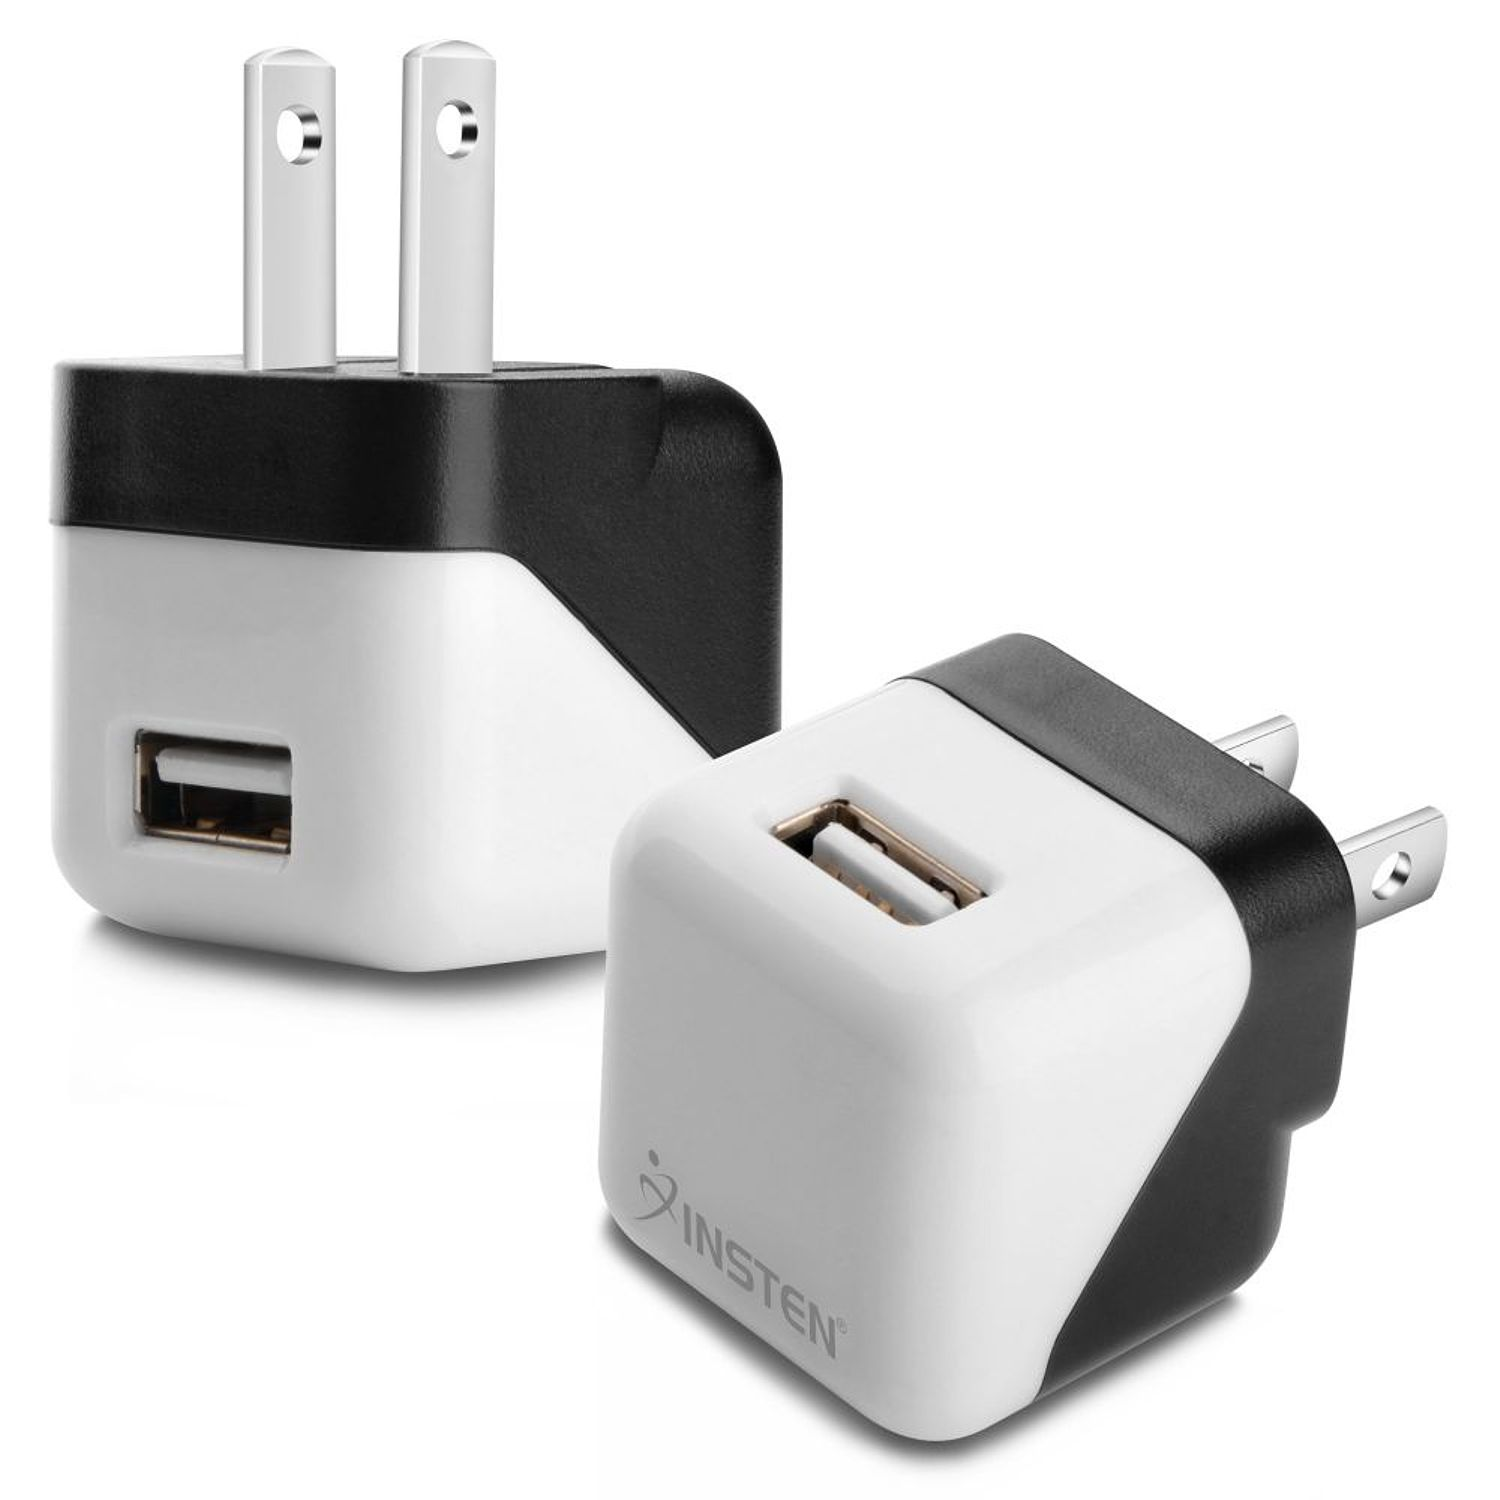 Accesorio Para El Celular Usb Charger by Insten Universal Black USB 1A Travel Adapter Wall AC Charger For iPhone X 7 8 Plus 6S Samsung Galaxy S4 S5 S6 S7 S8 Note 8 LG K7 Stylo 3 2 K8v G6 Coolpad Catalyst Motorola Moto E4 G5 G4 + Insten en VeoyCompro.net